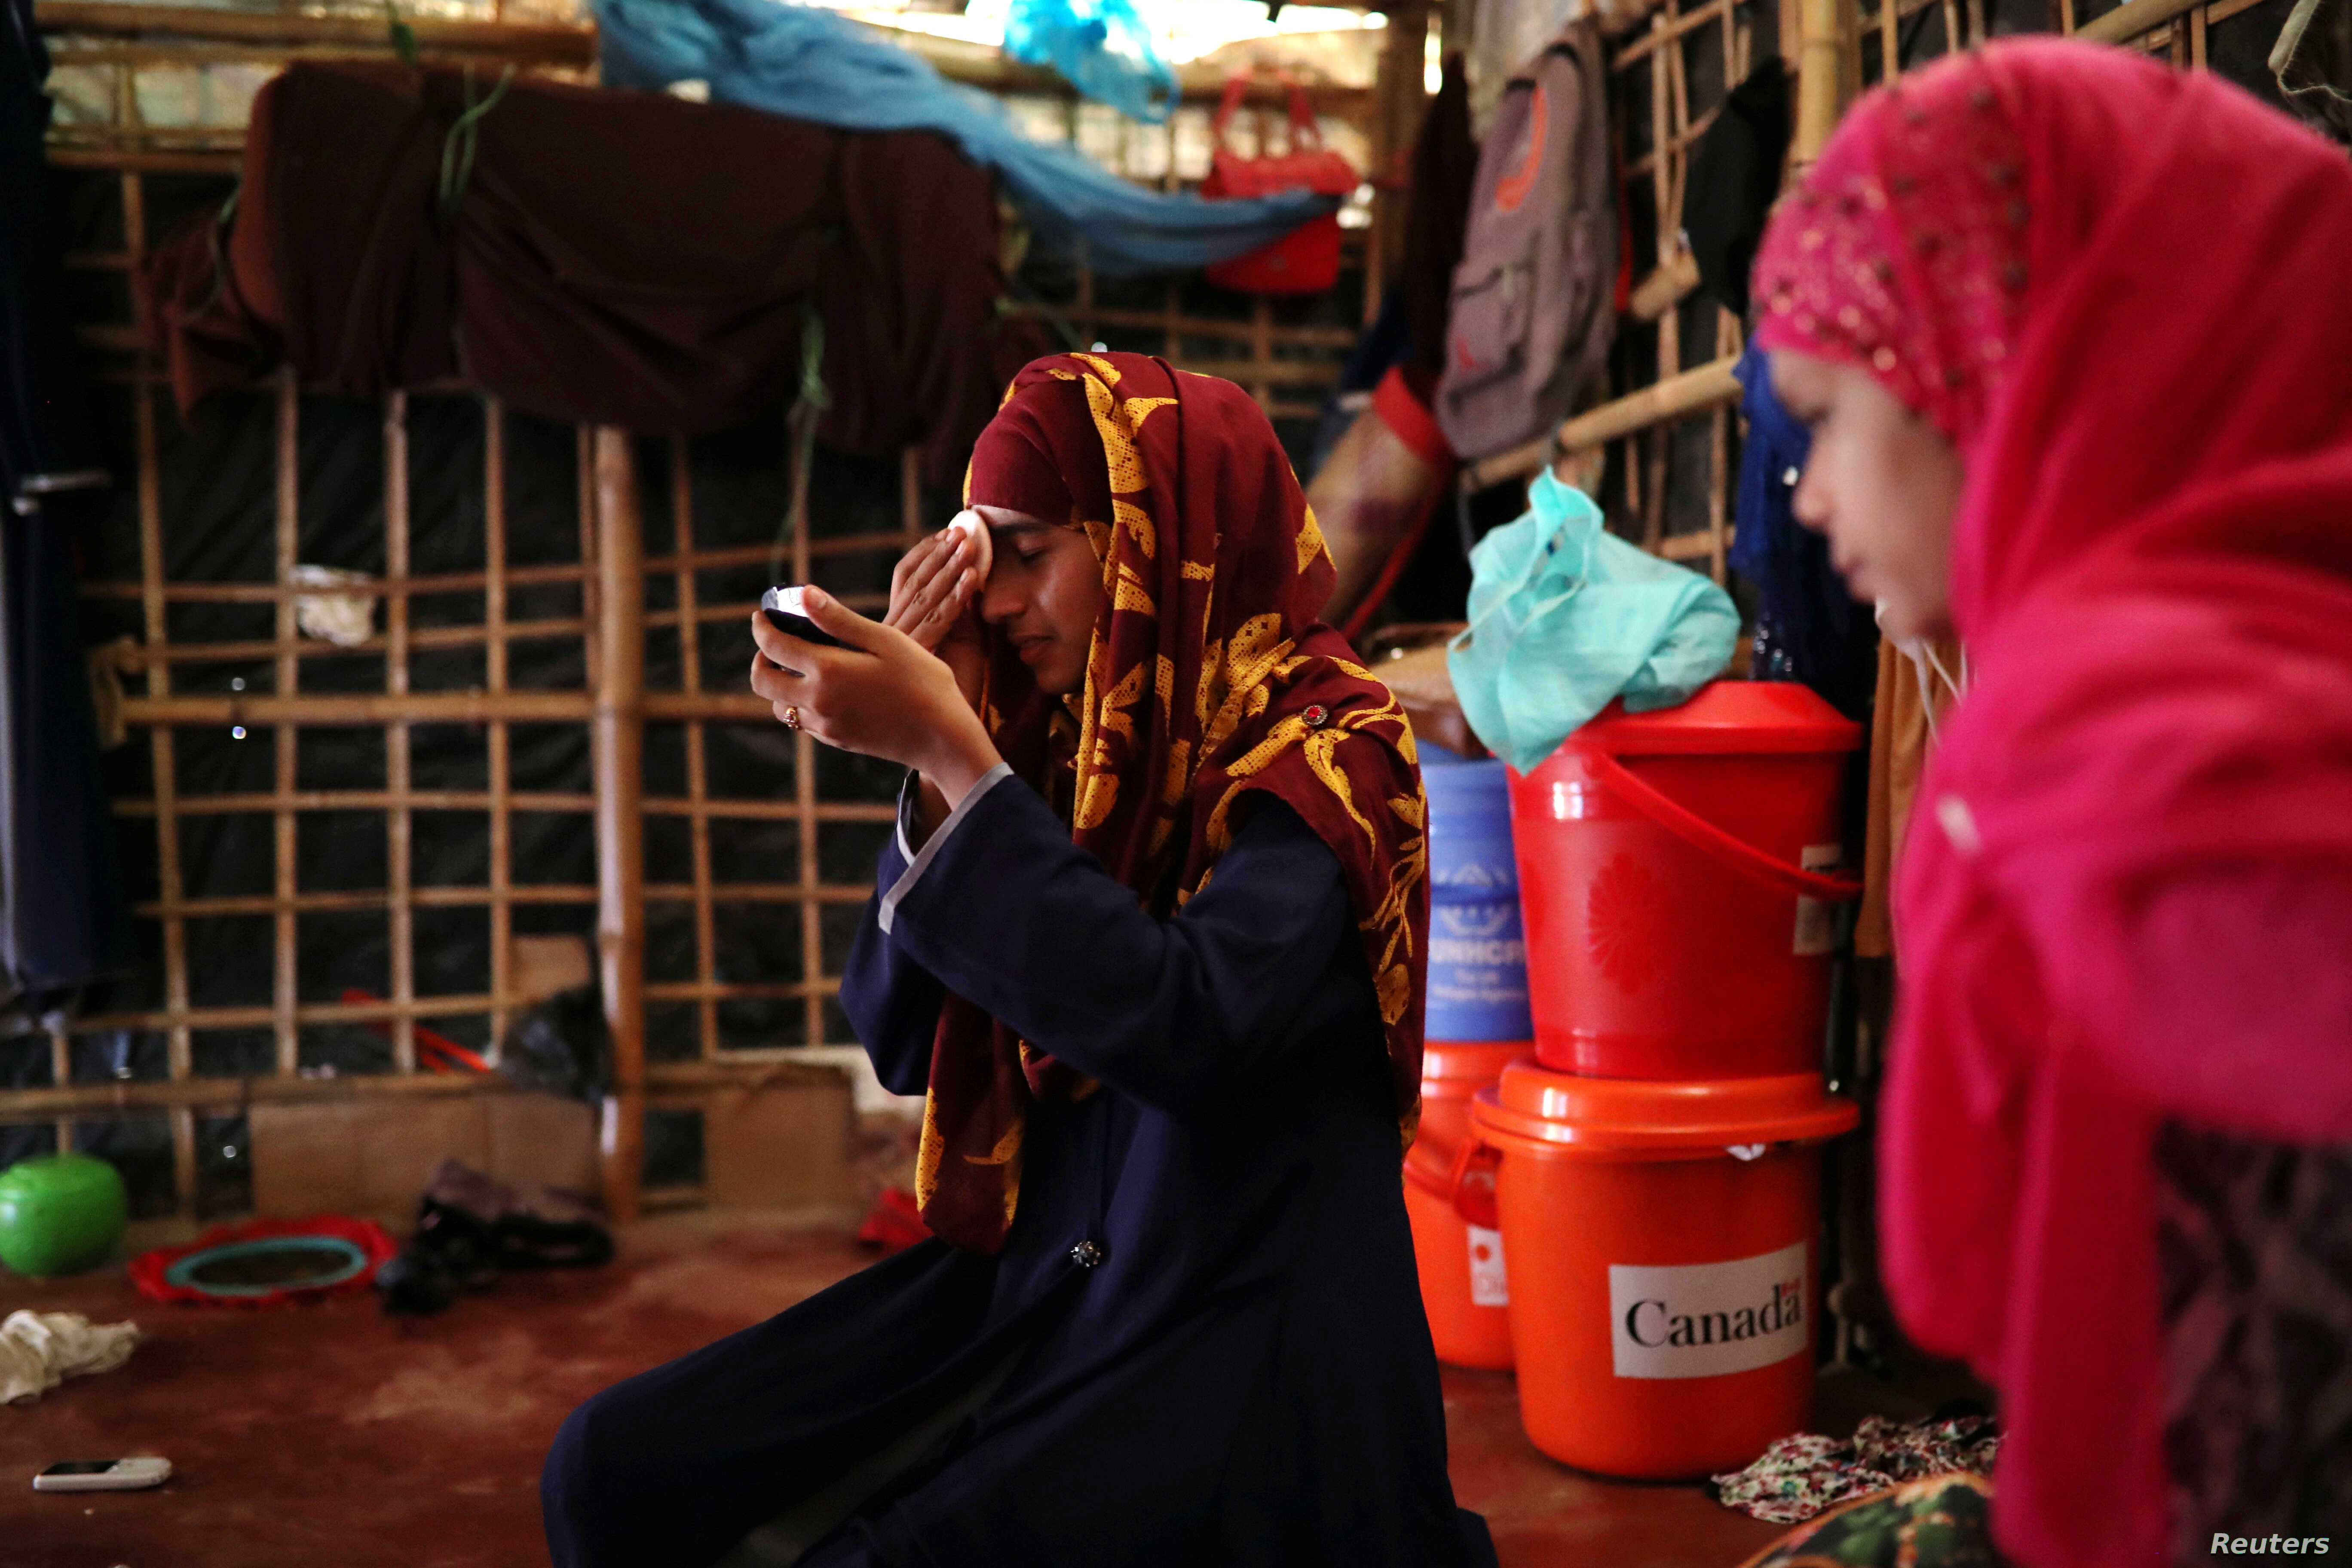 Formin Akter applies makeup before heading to Chittagong to attend school at the Asian University for Women in Cox's Bazar, Bangladesh, Aug. 24, 2018.